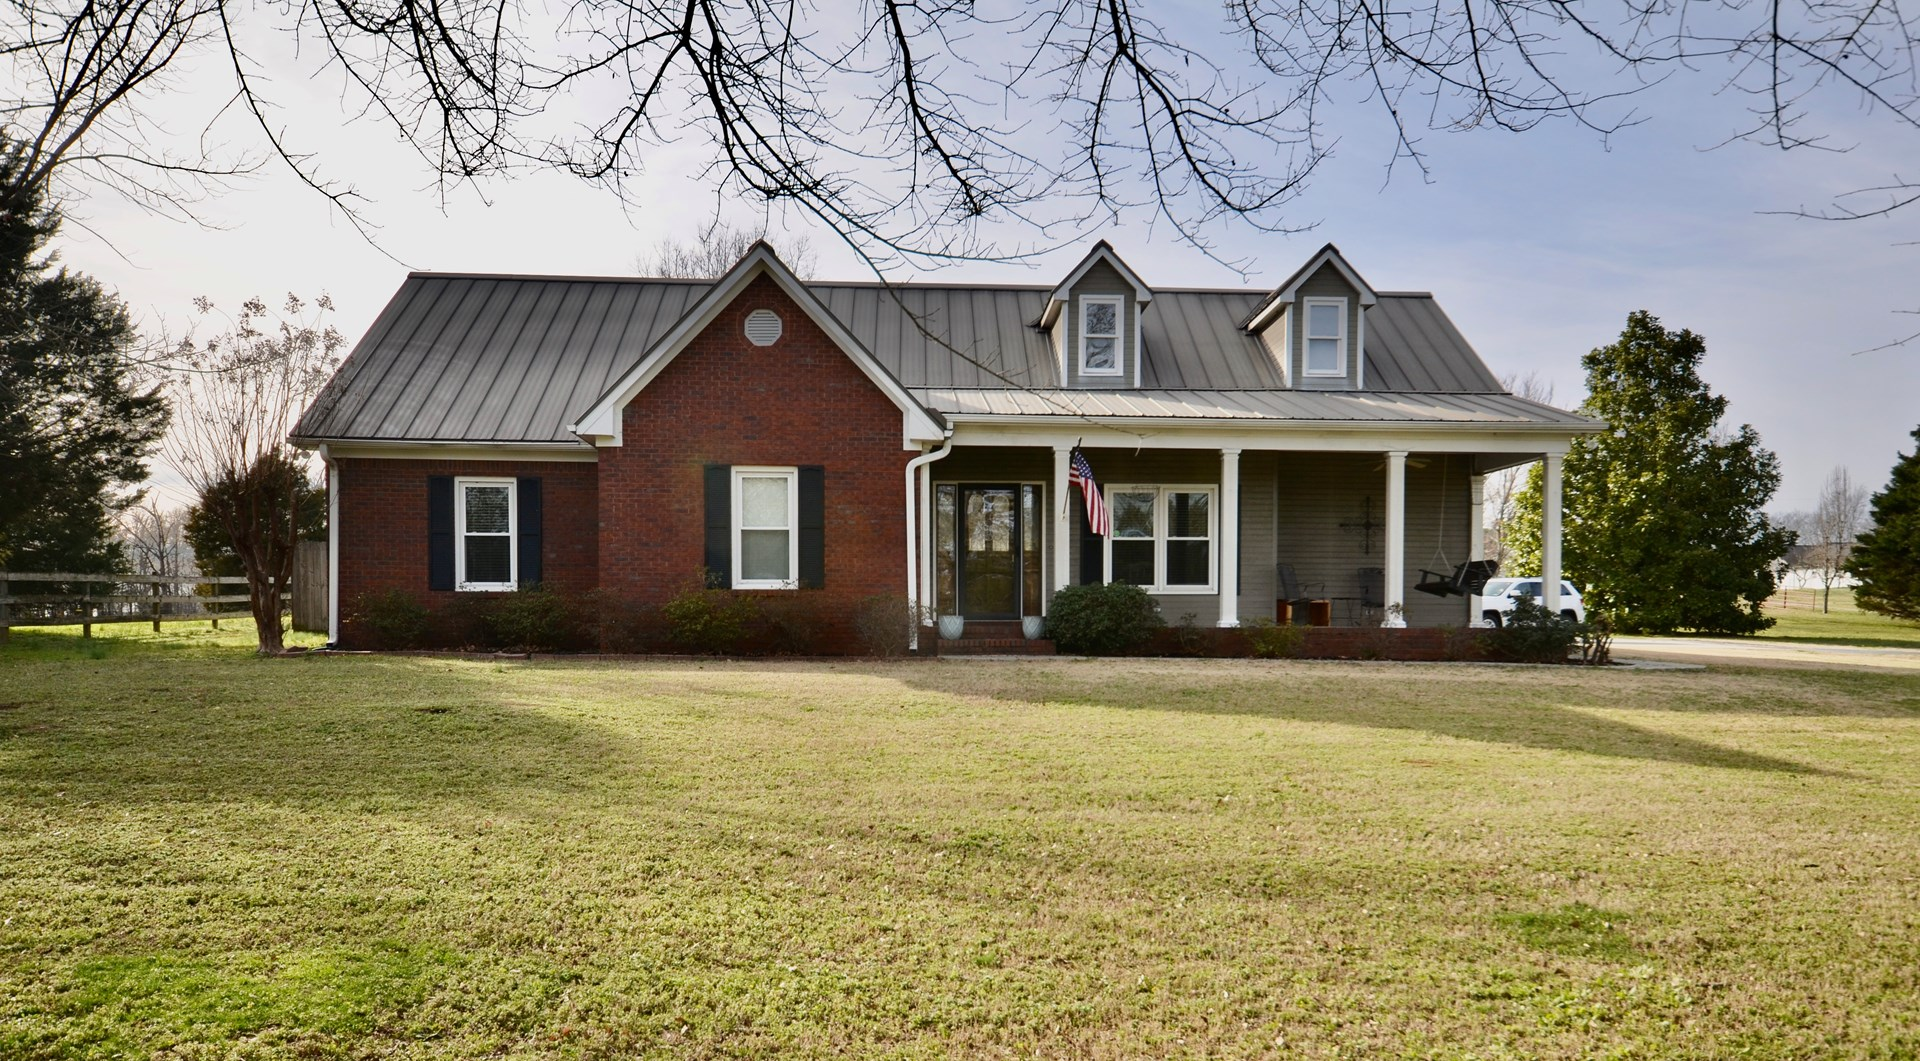 Home, 4.5 Acres, Barn AND A Pool!